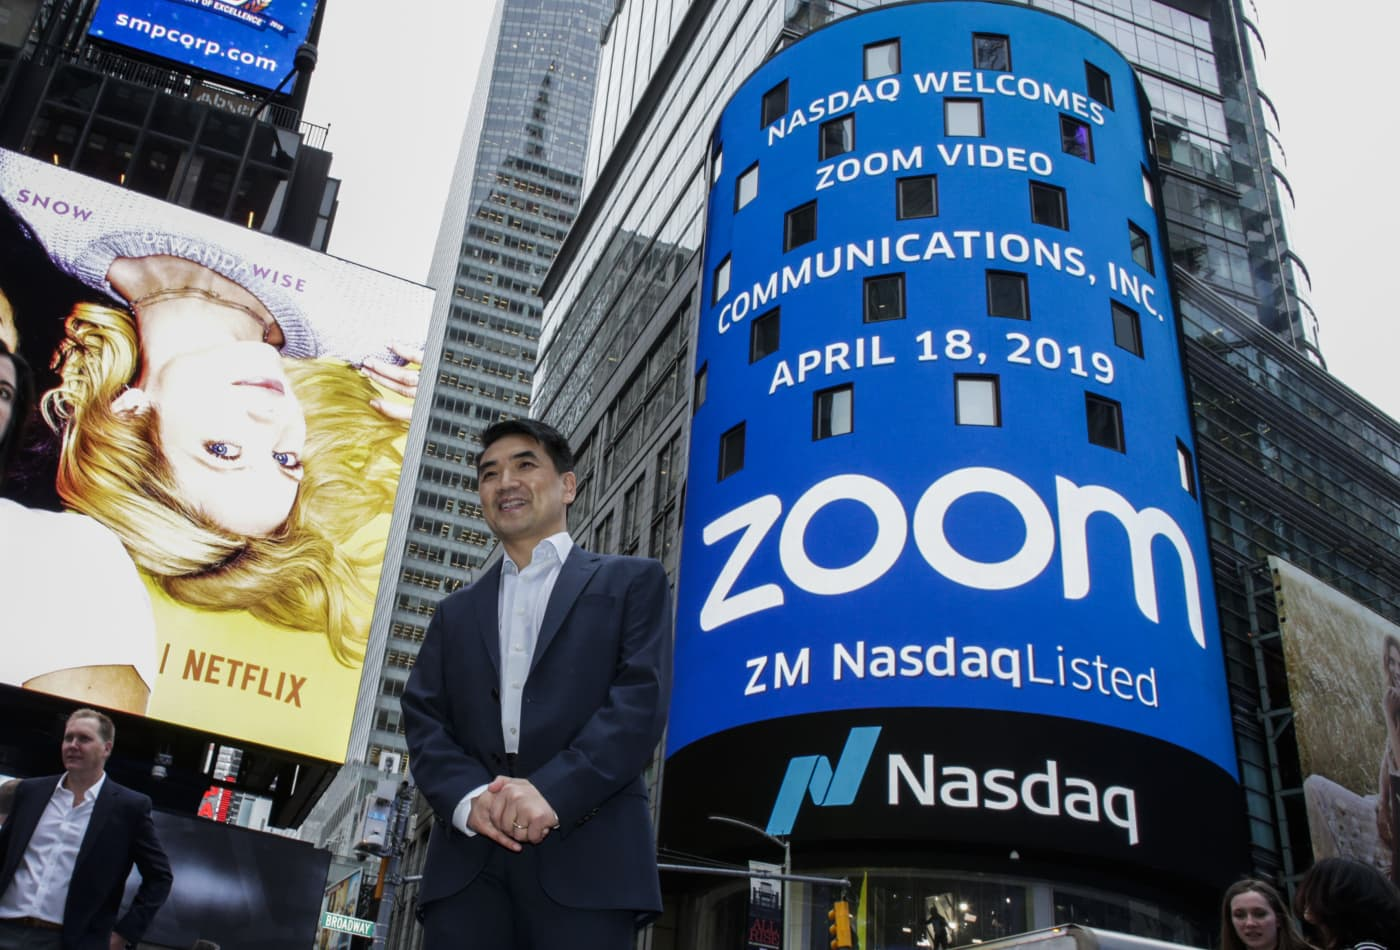 Cramer: Investors should consider taking profits in 'red hot' tech stocks such as Zoom and Cloudflare